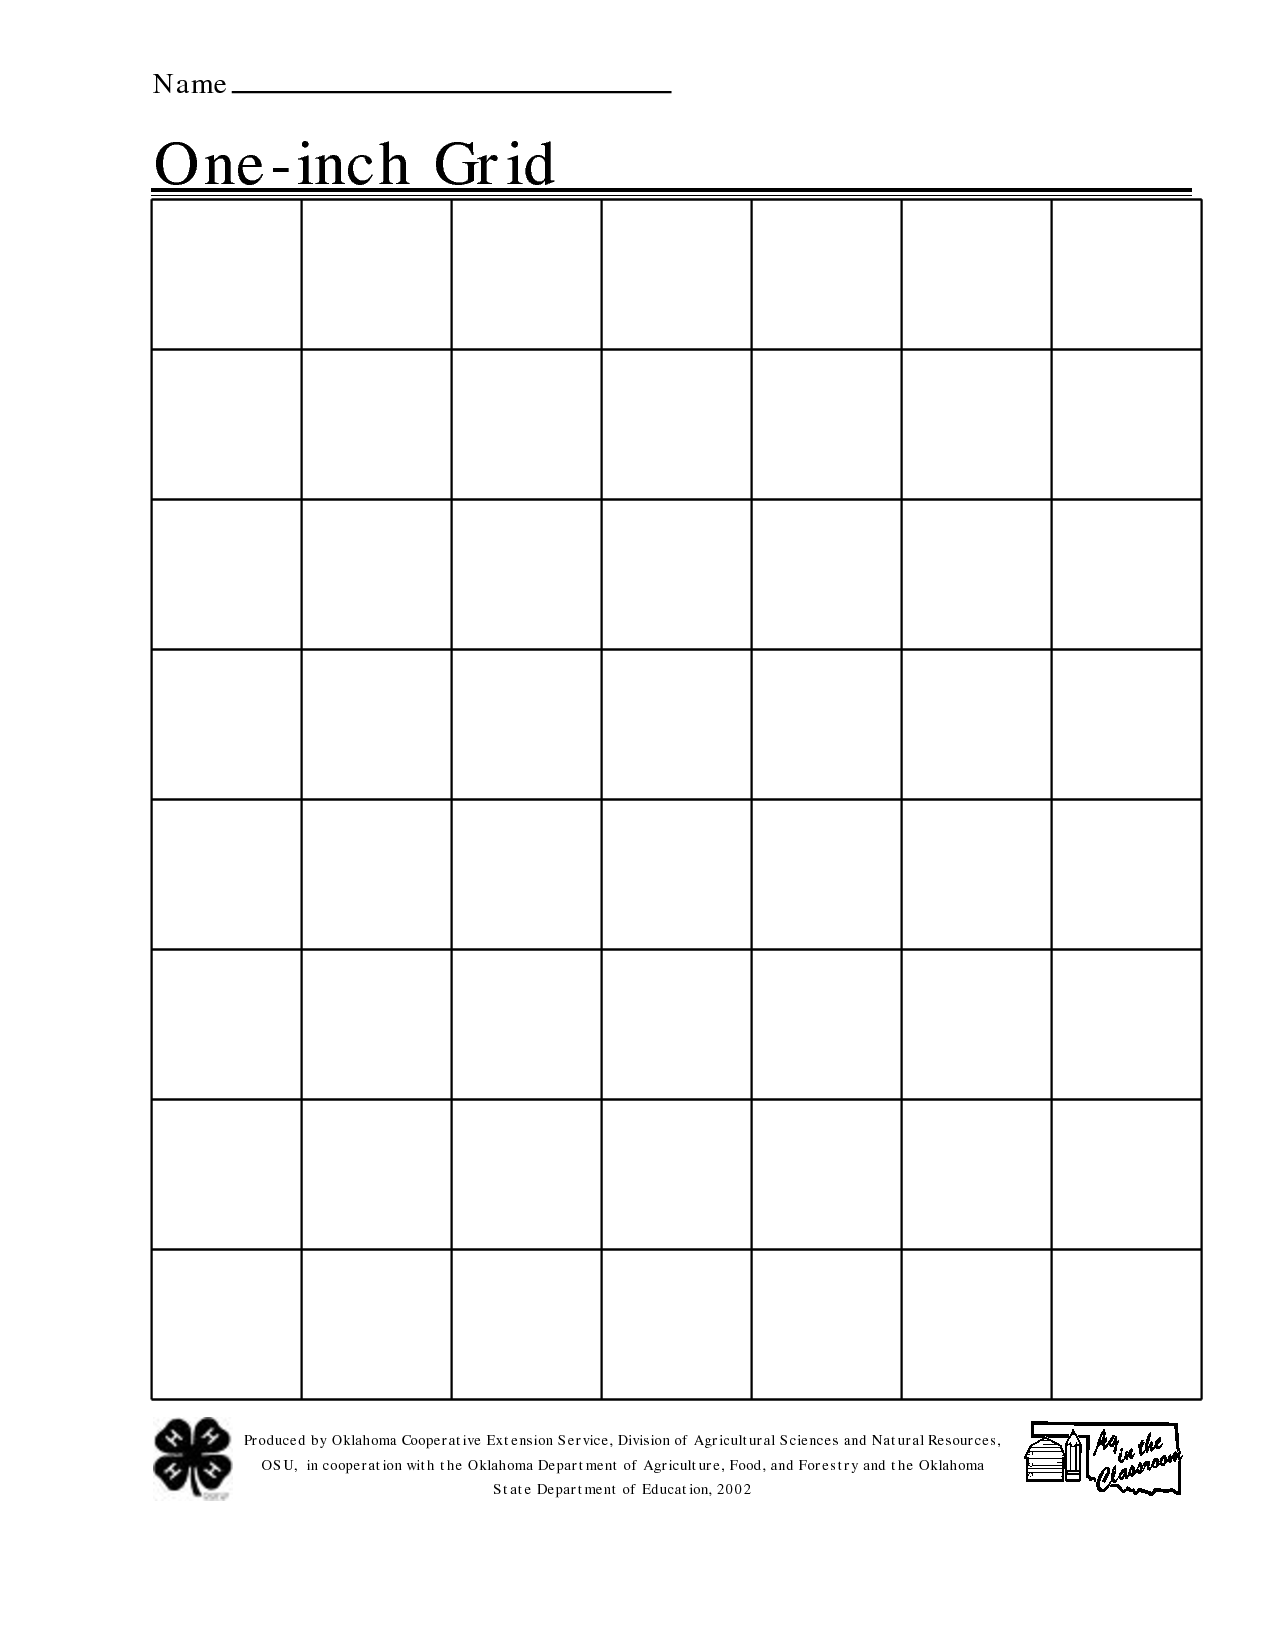 Free Printable 1 Inch Grid Paper  Free Printable Grid Paper For Math